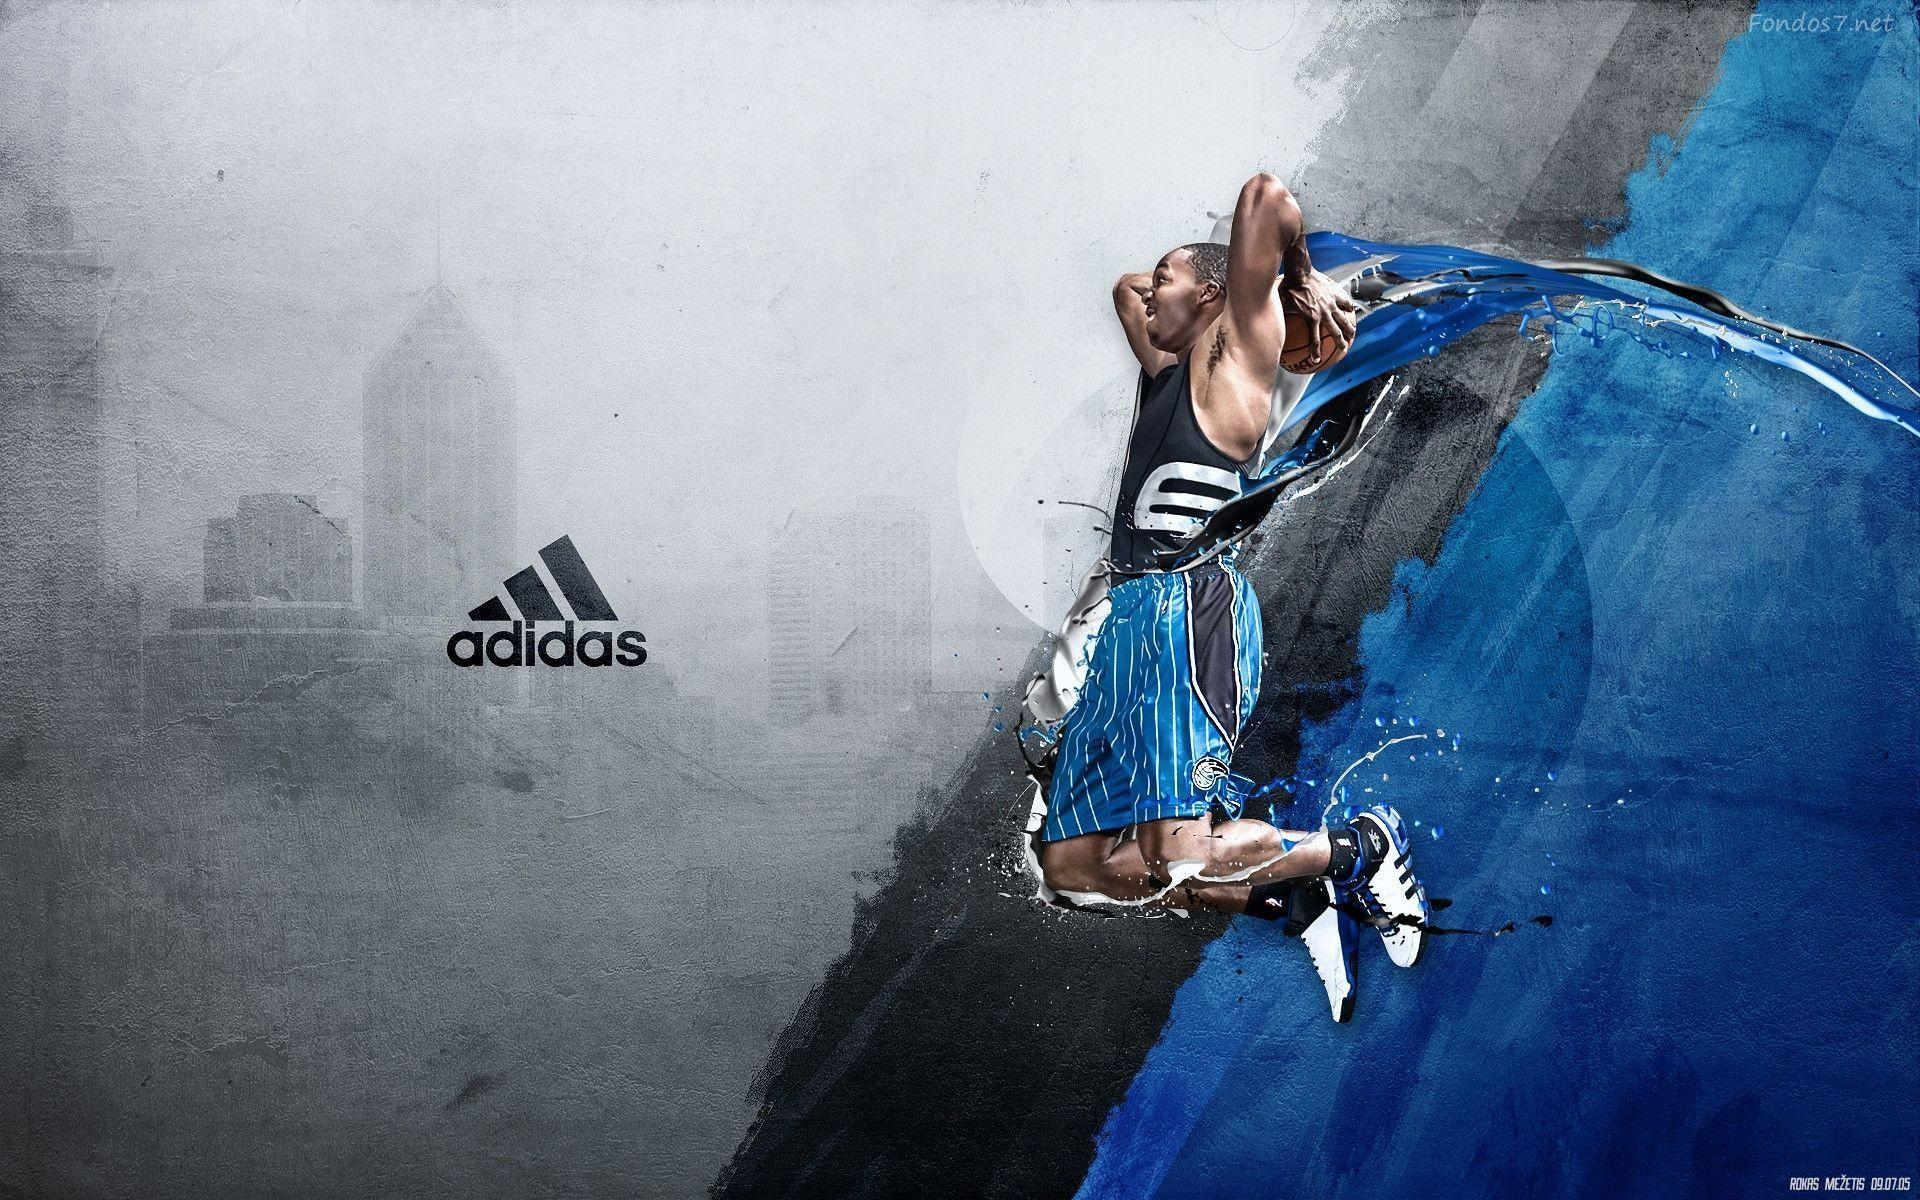 Adidas Wallpaper 42 awesome backgrounds 23311 HD Wallpaper | Wallroro.